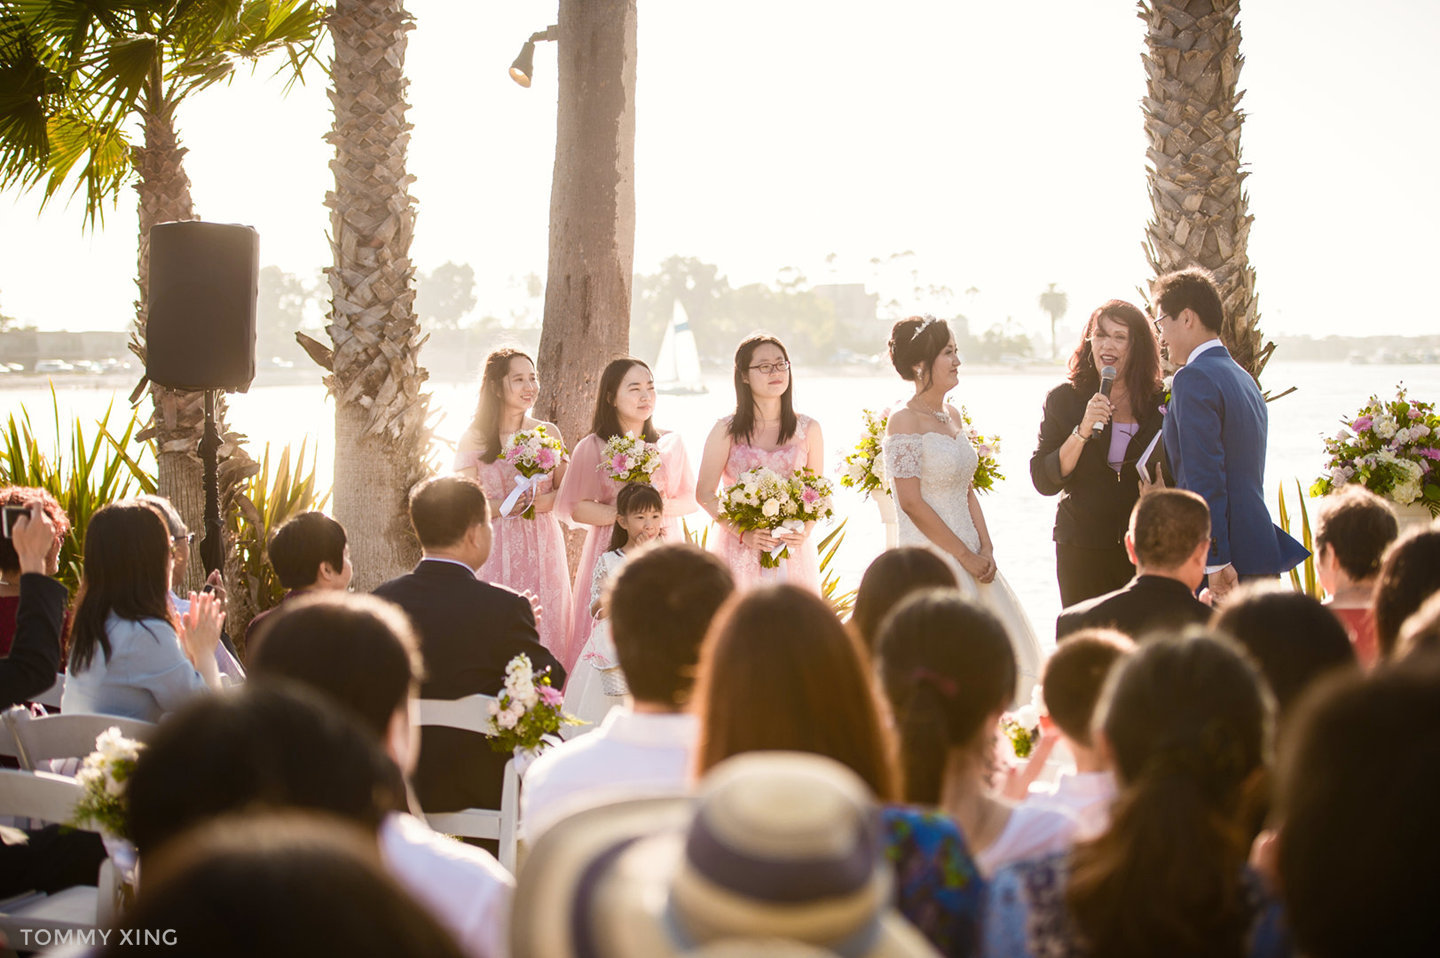 Paradise Point Resort Wedding Xiaolu & Bin San Diego 圣地亚哥婚礼摄影跟拍 Tommy Xing Photography 洛杉矶婚礼婚纱照摄影师 141.jpg